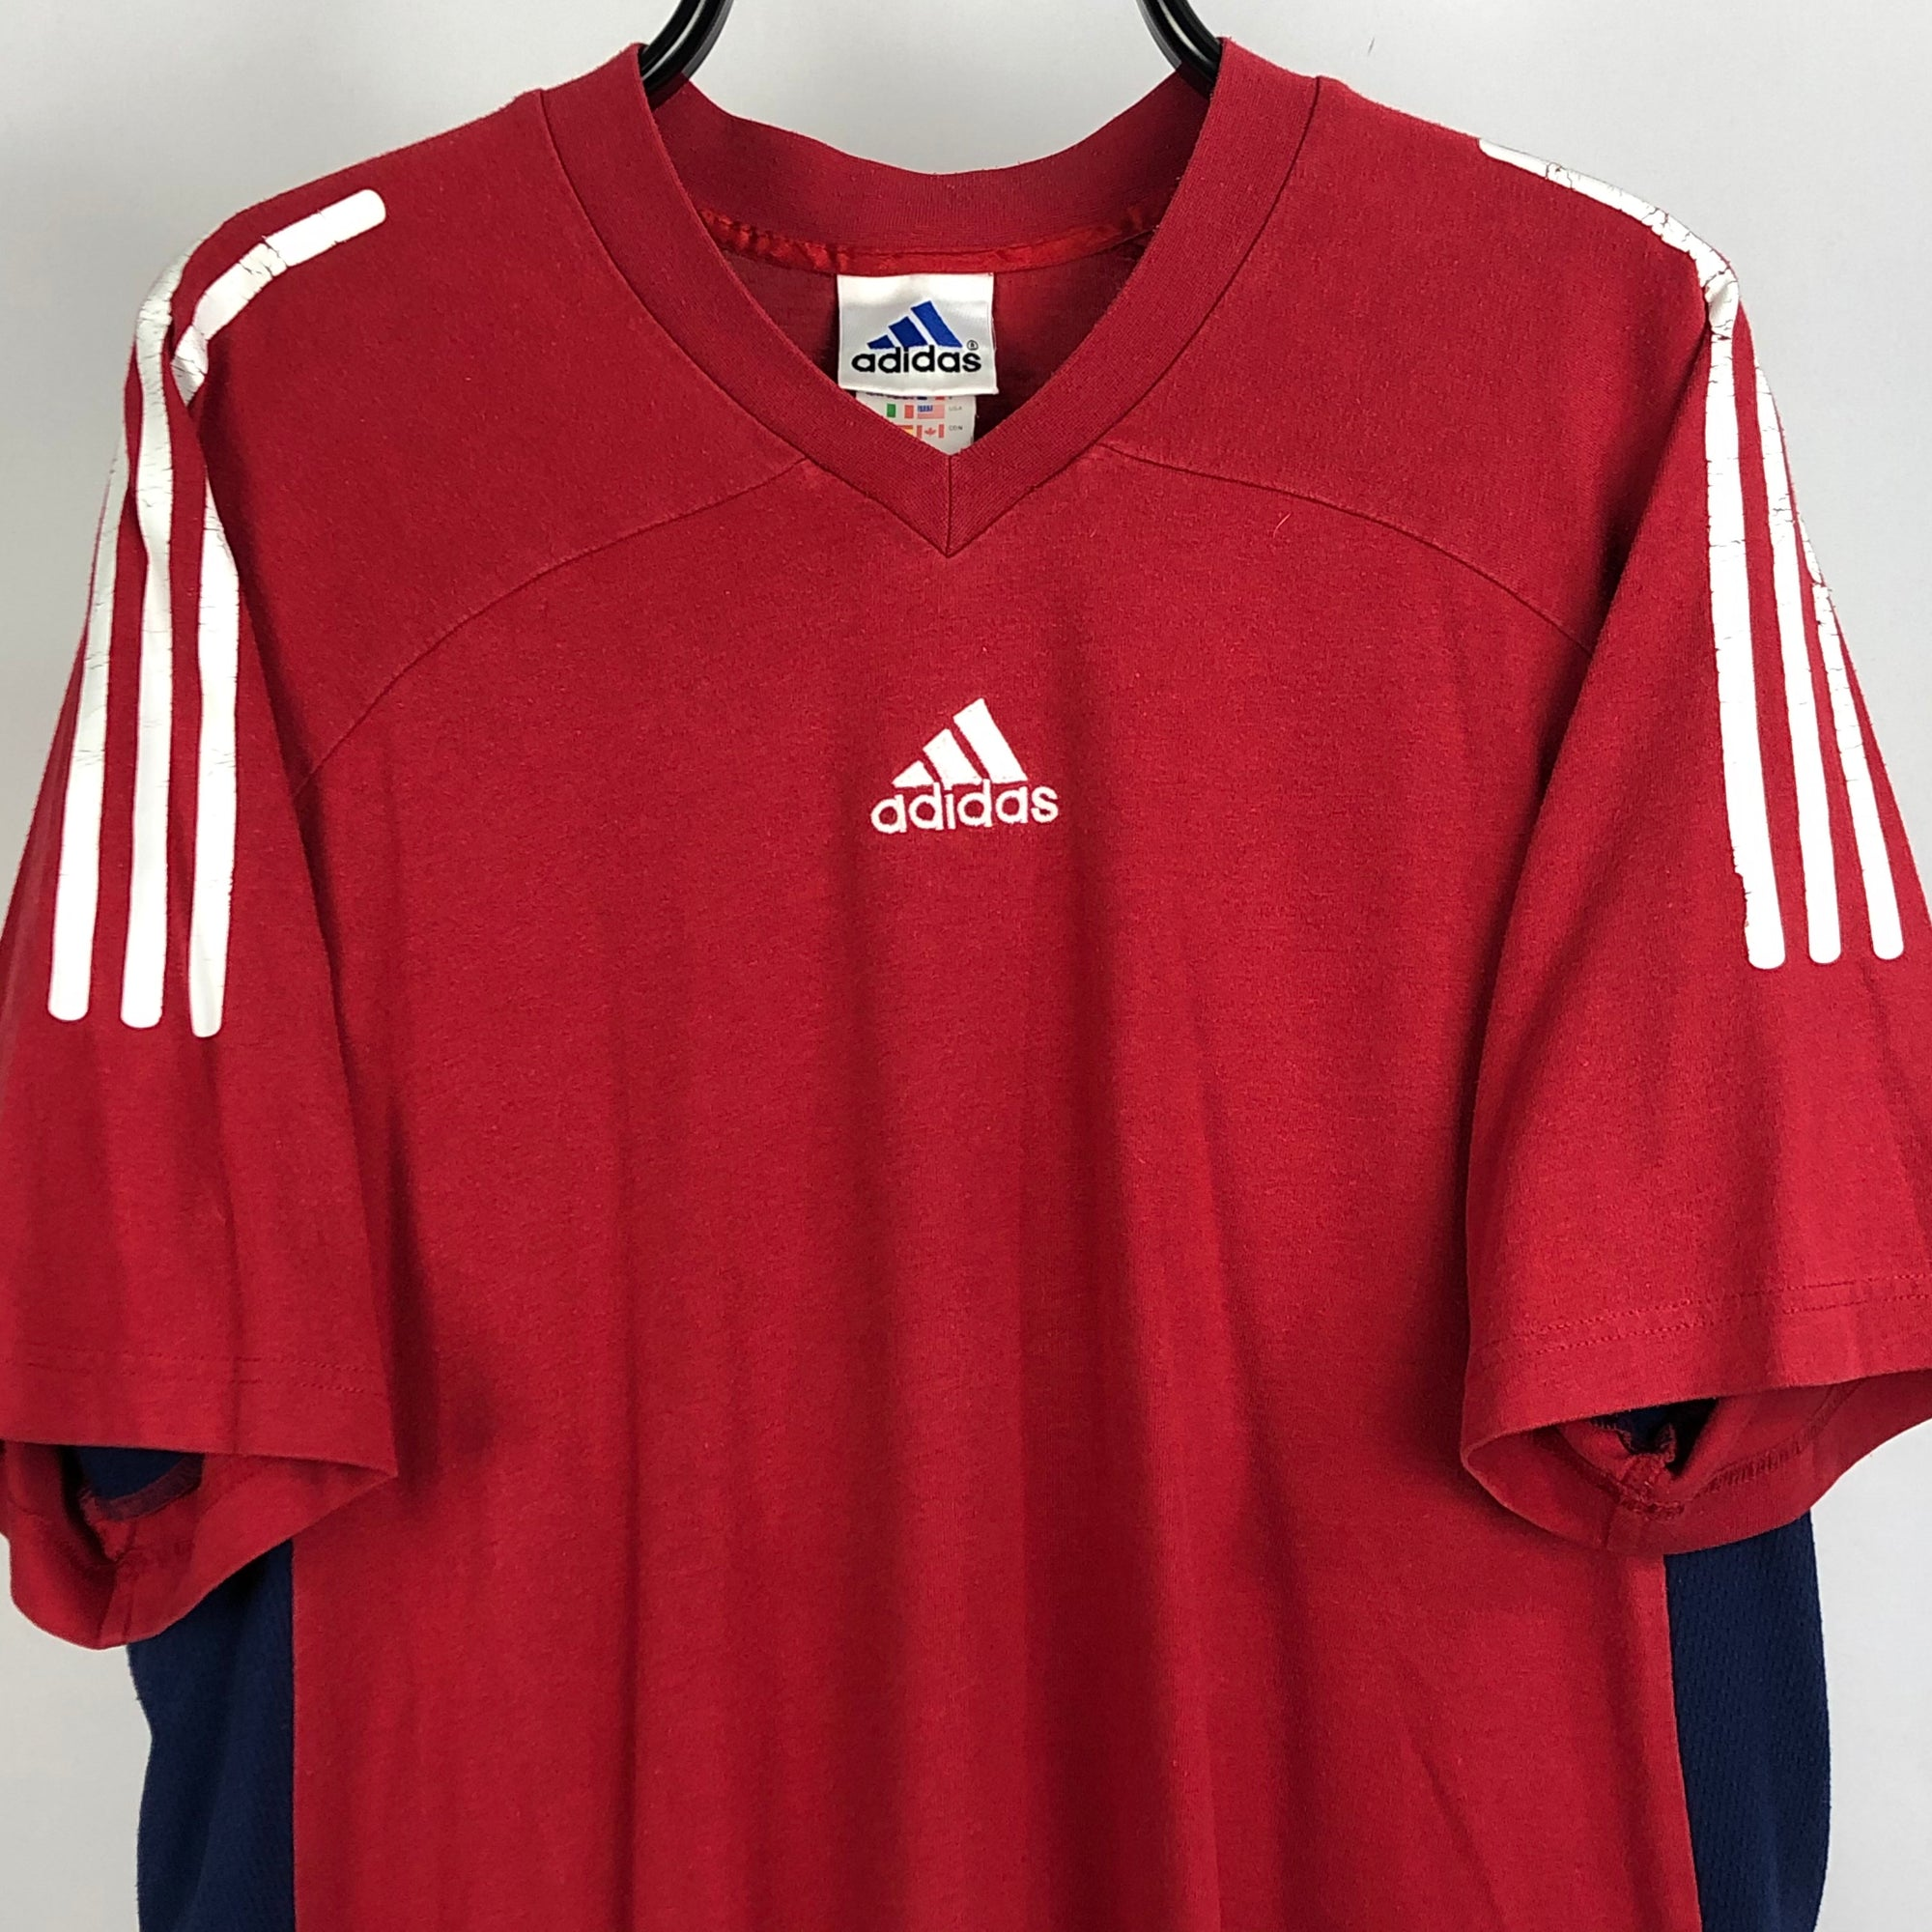 Vintage Adidas Embroidered Centre Logo Tee - Men's Large/Women's XL